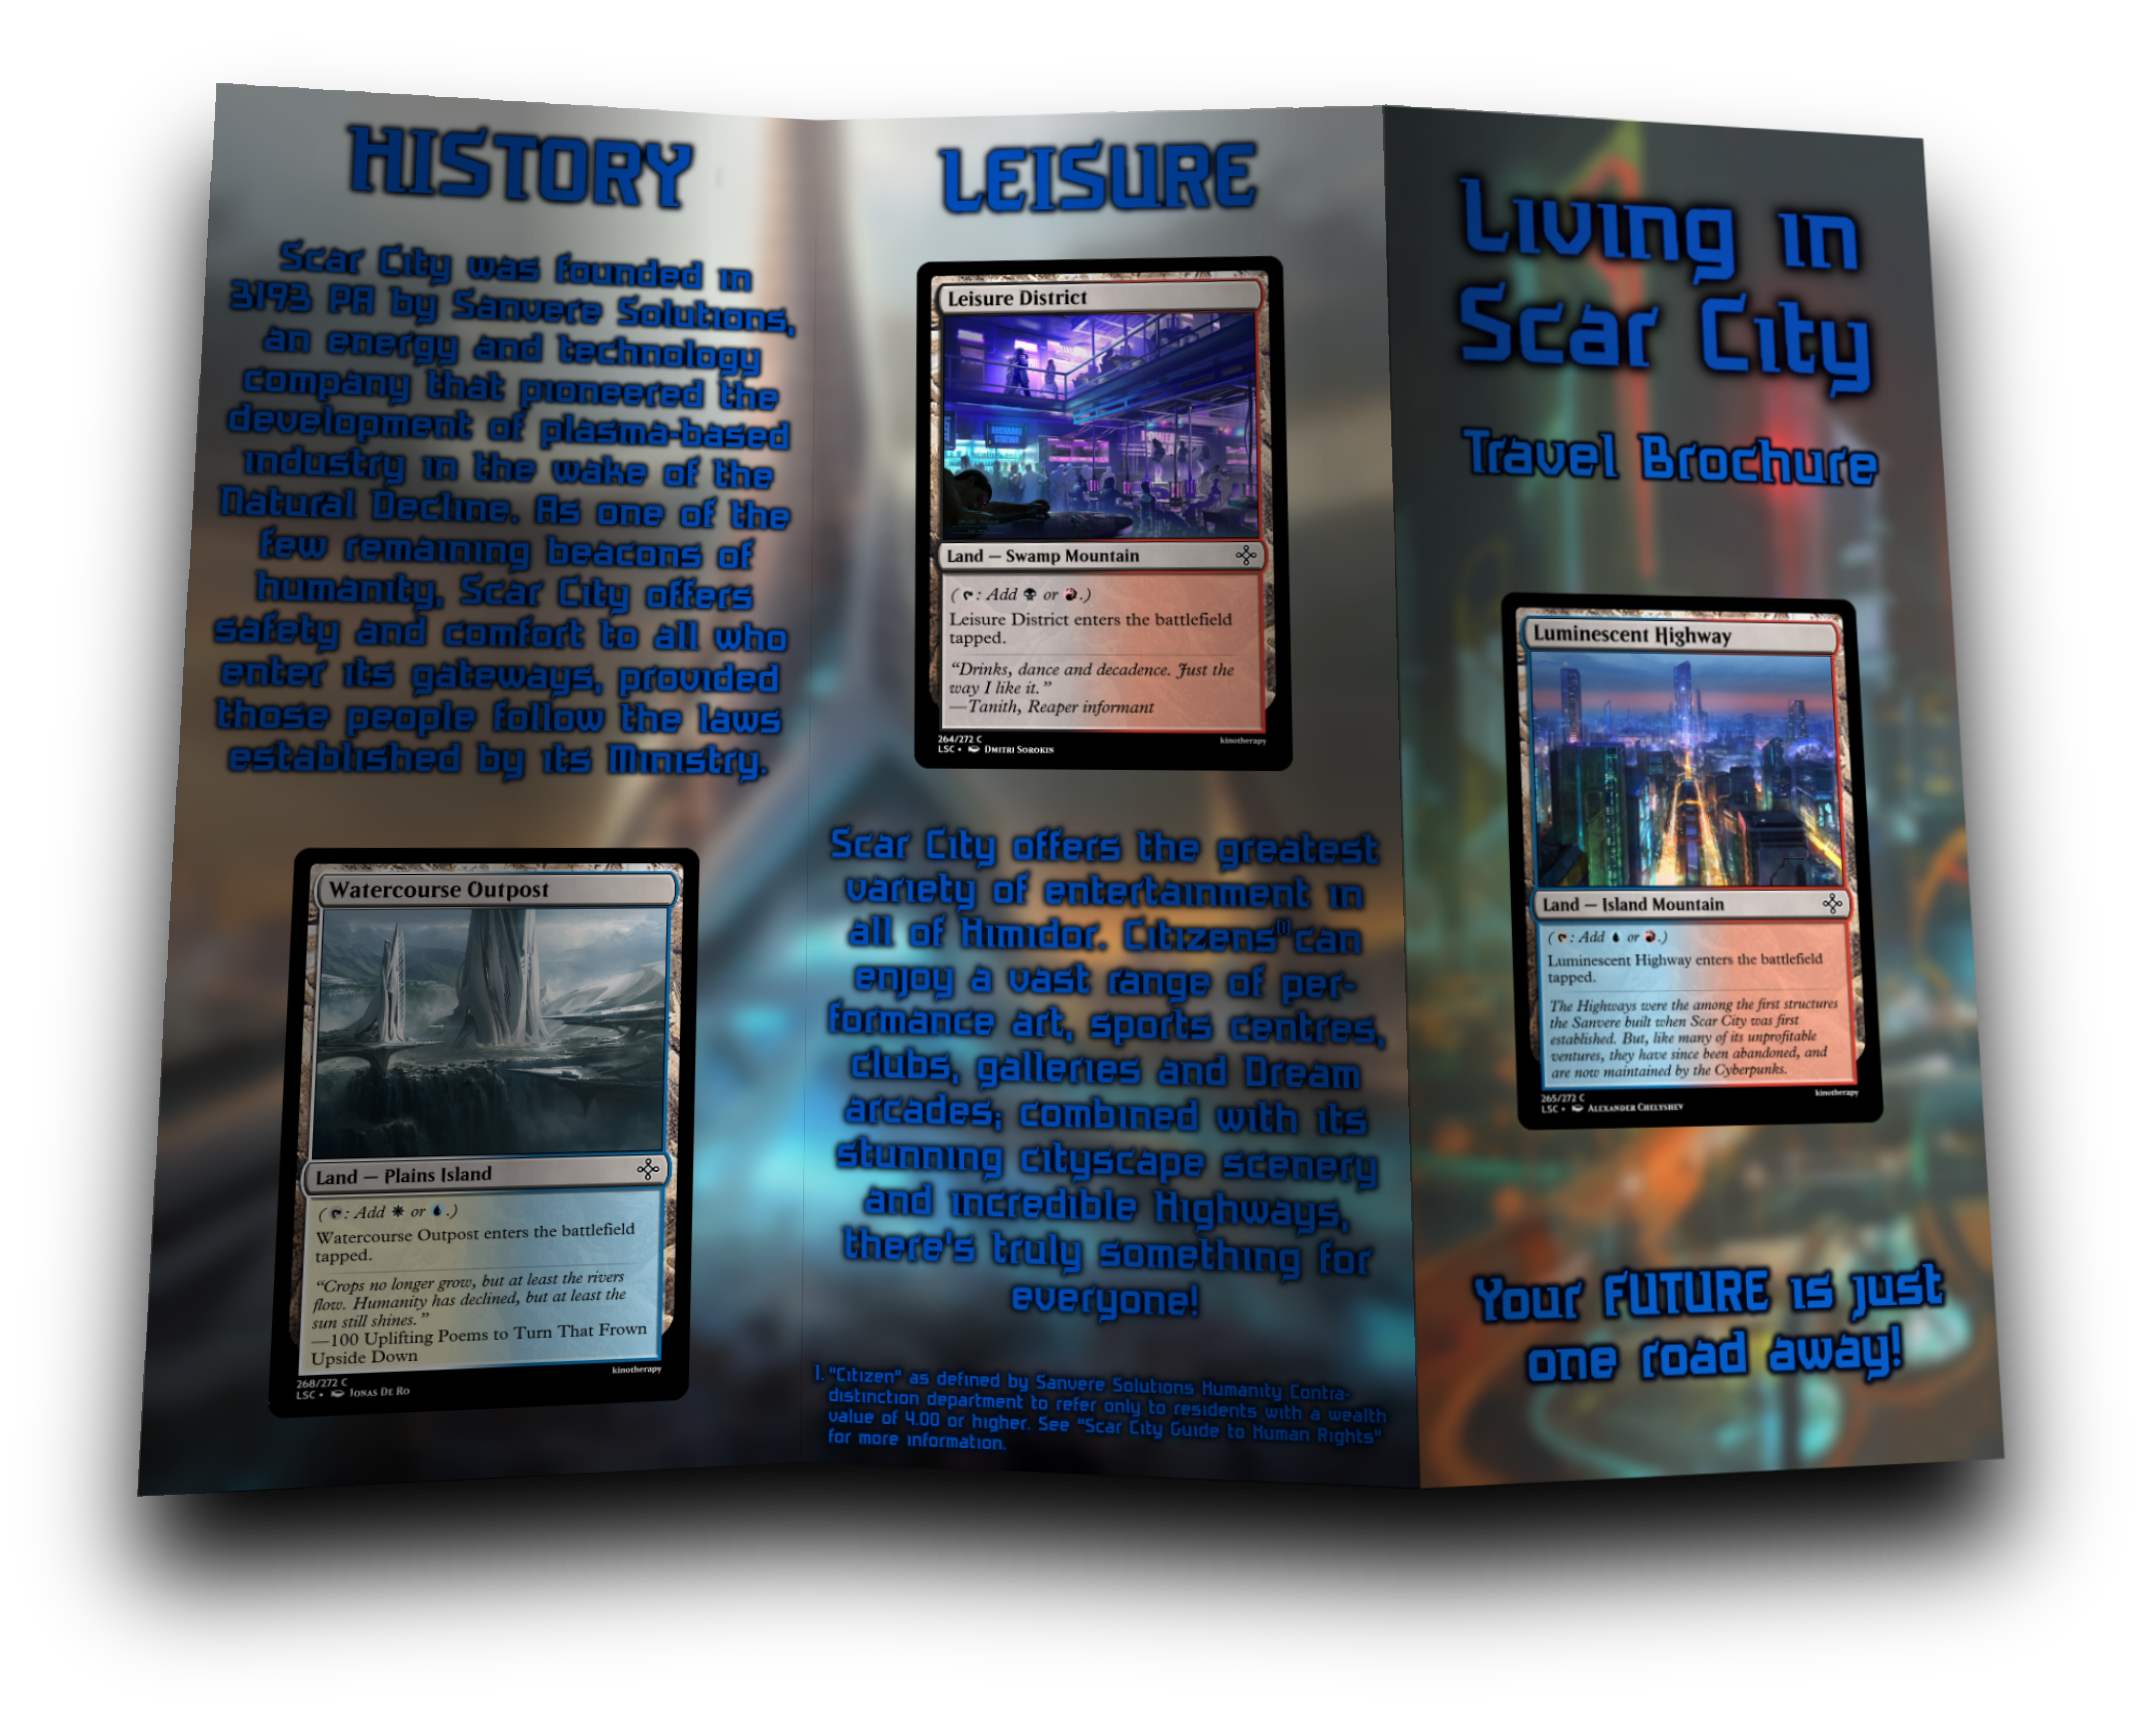 'Living in Scar City' Brochure Side 1